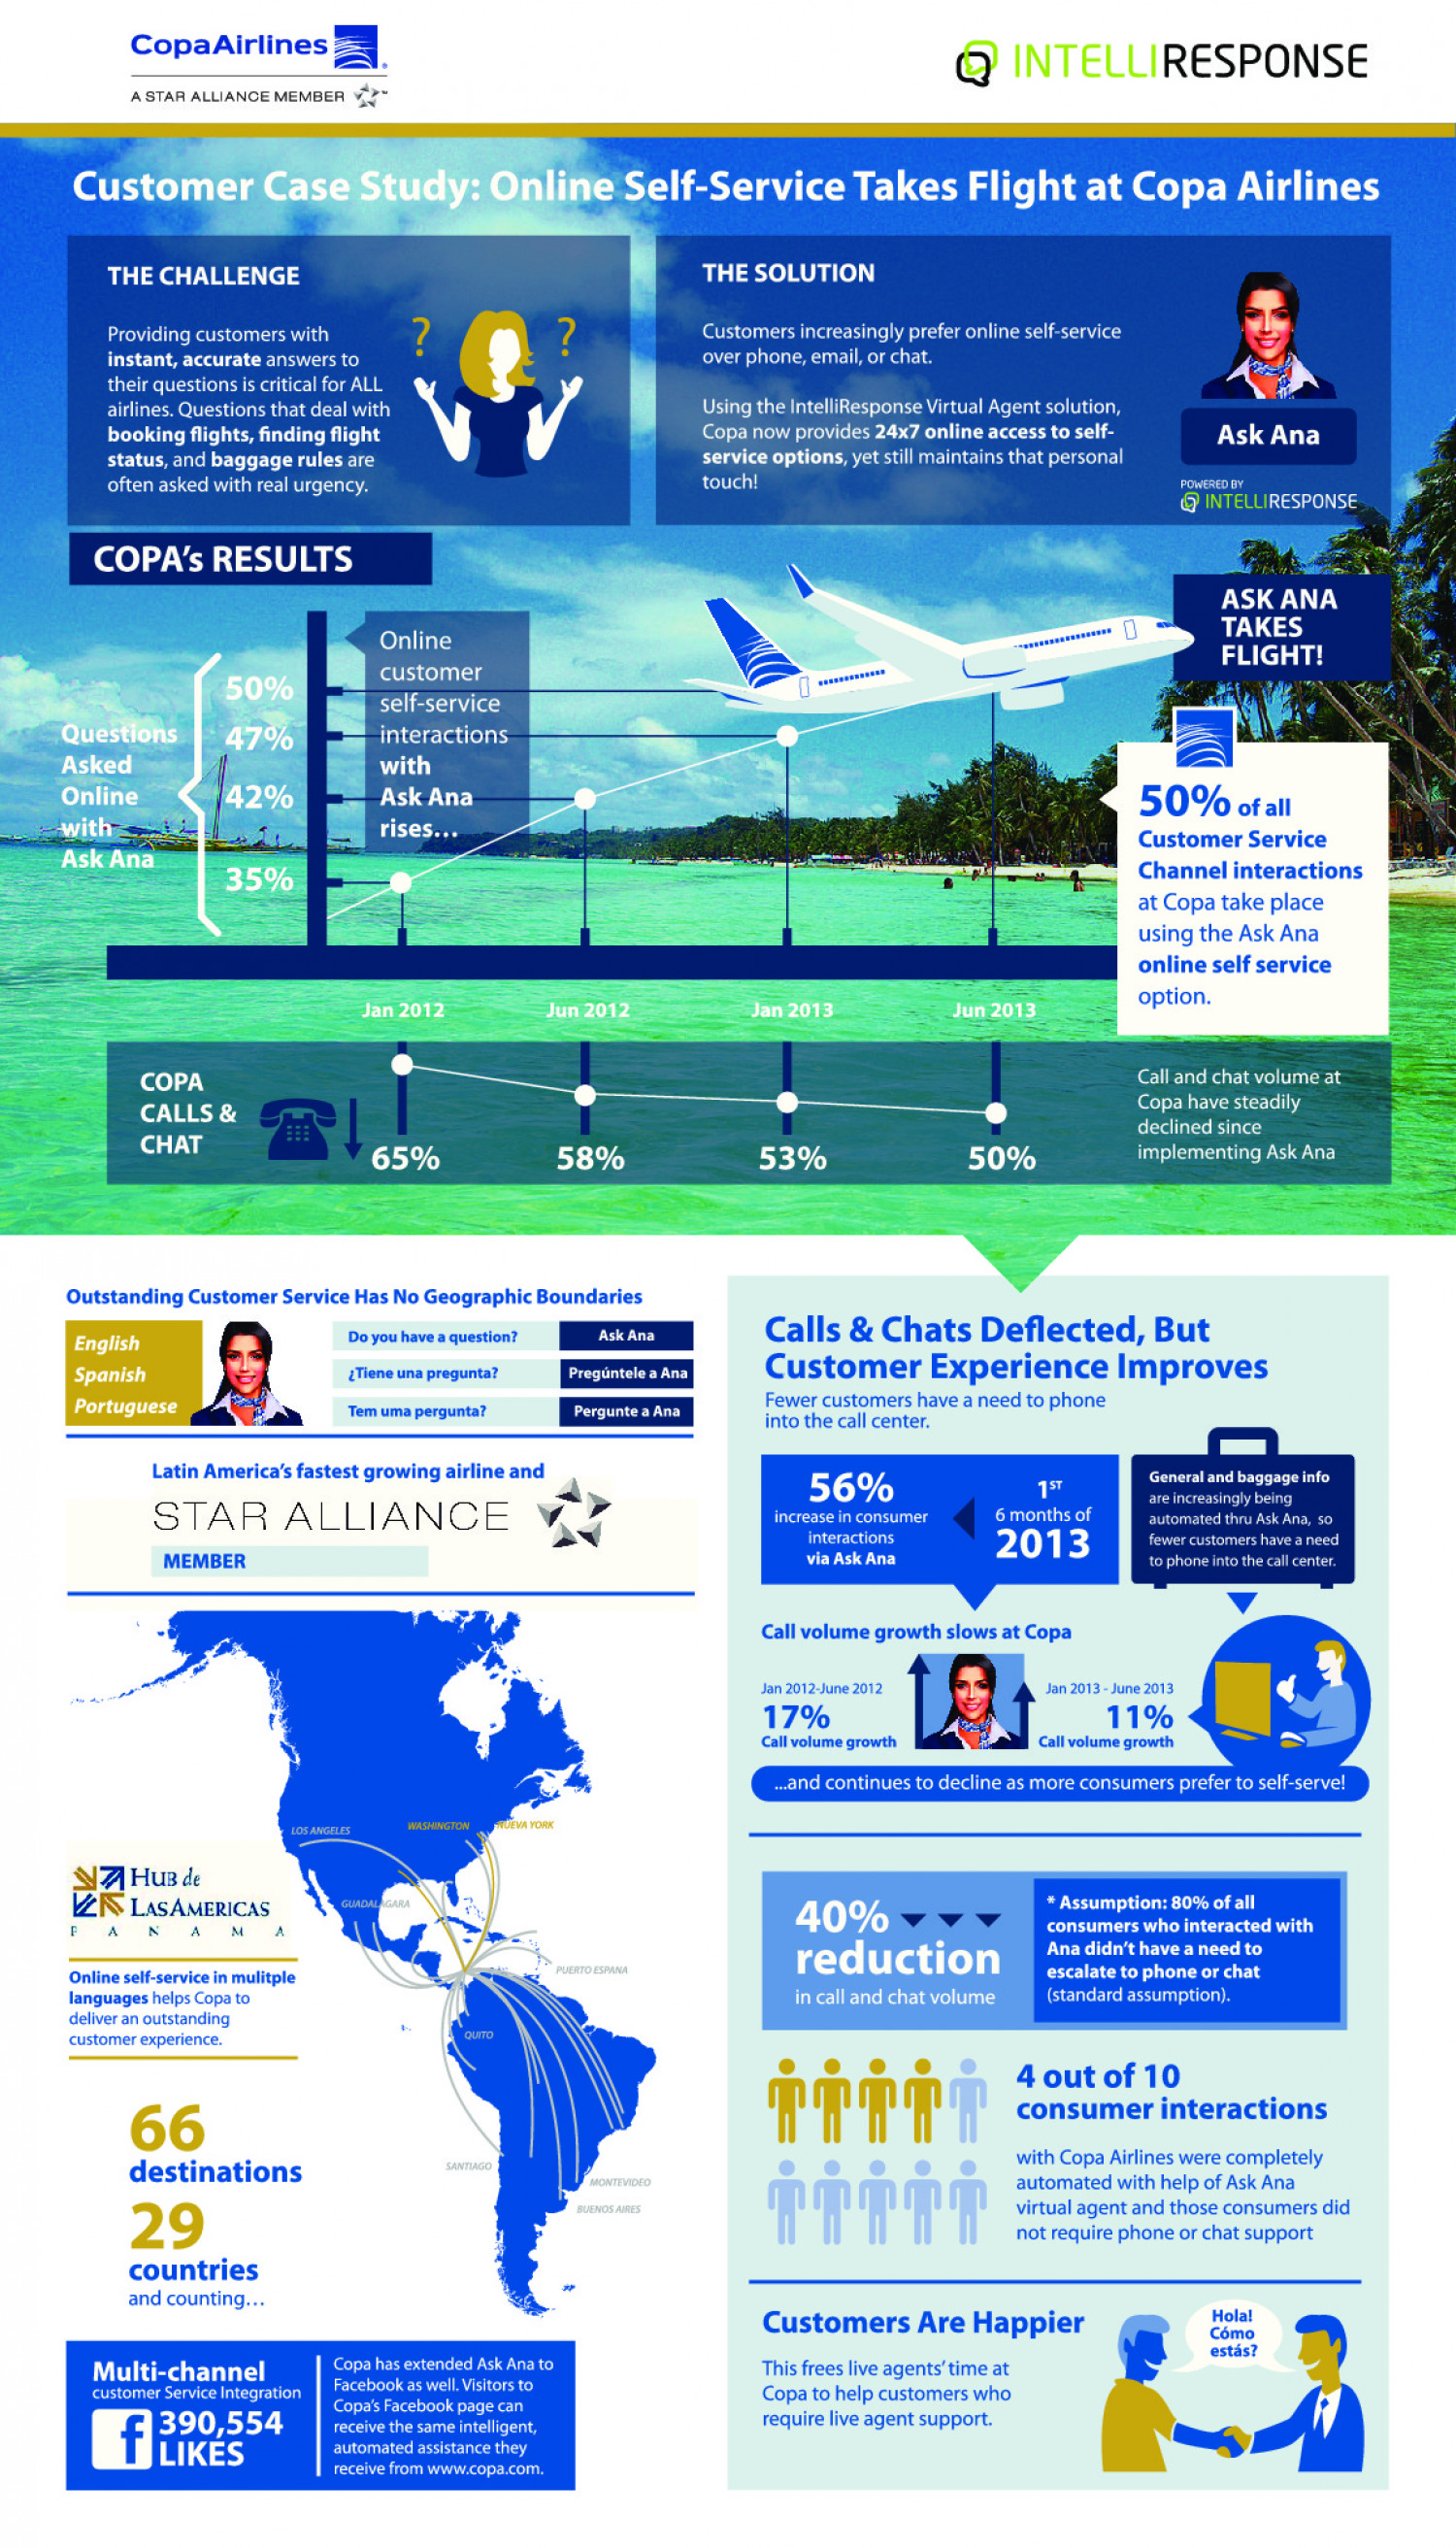 Online Self-Service Takes Flight at Copa Airlines Infographic